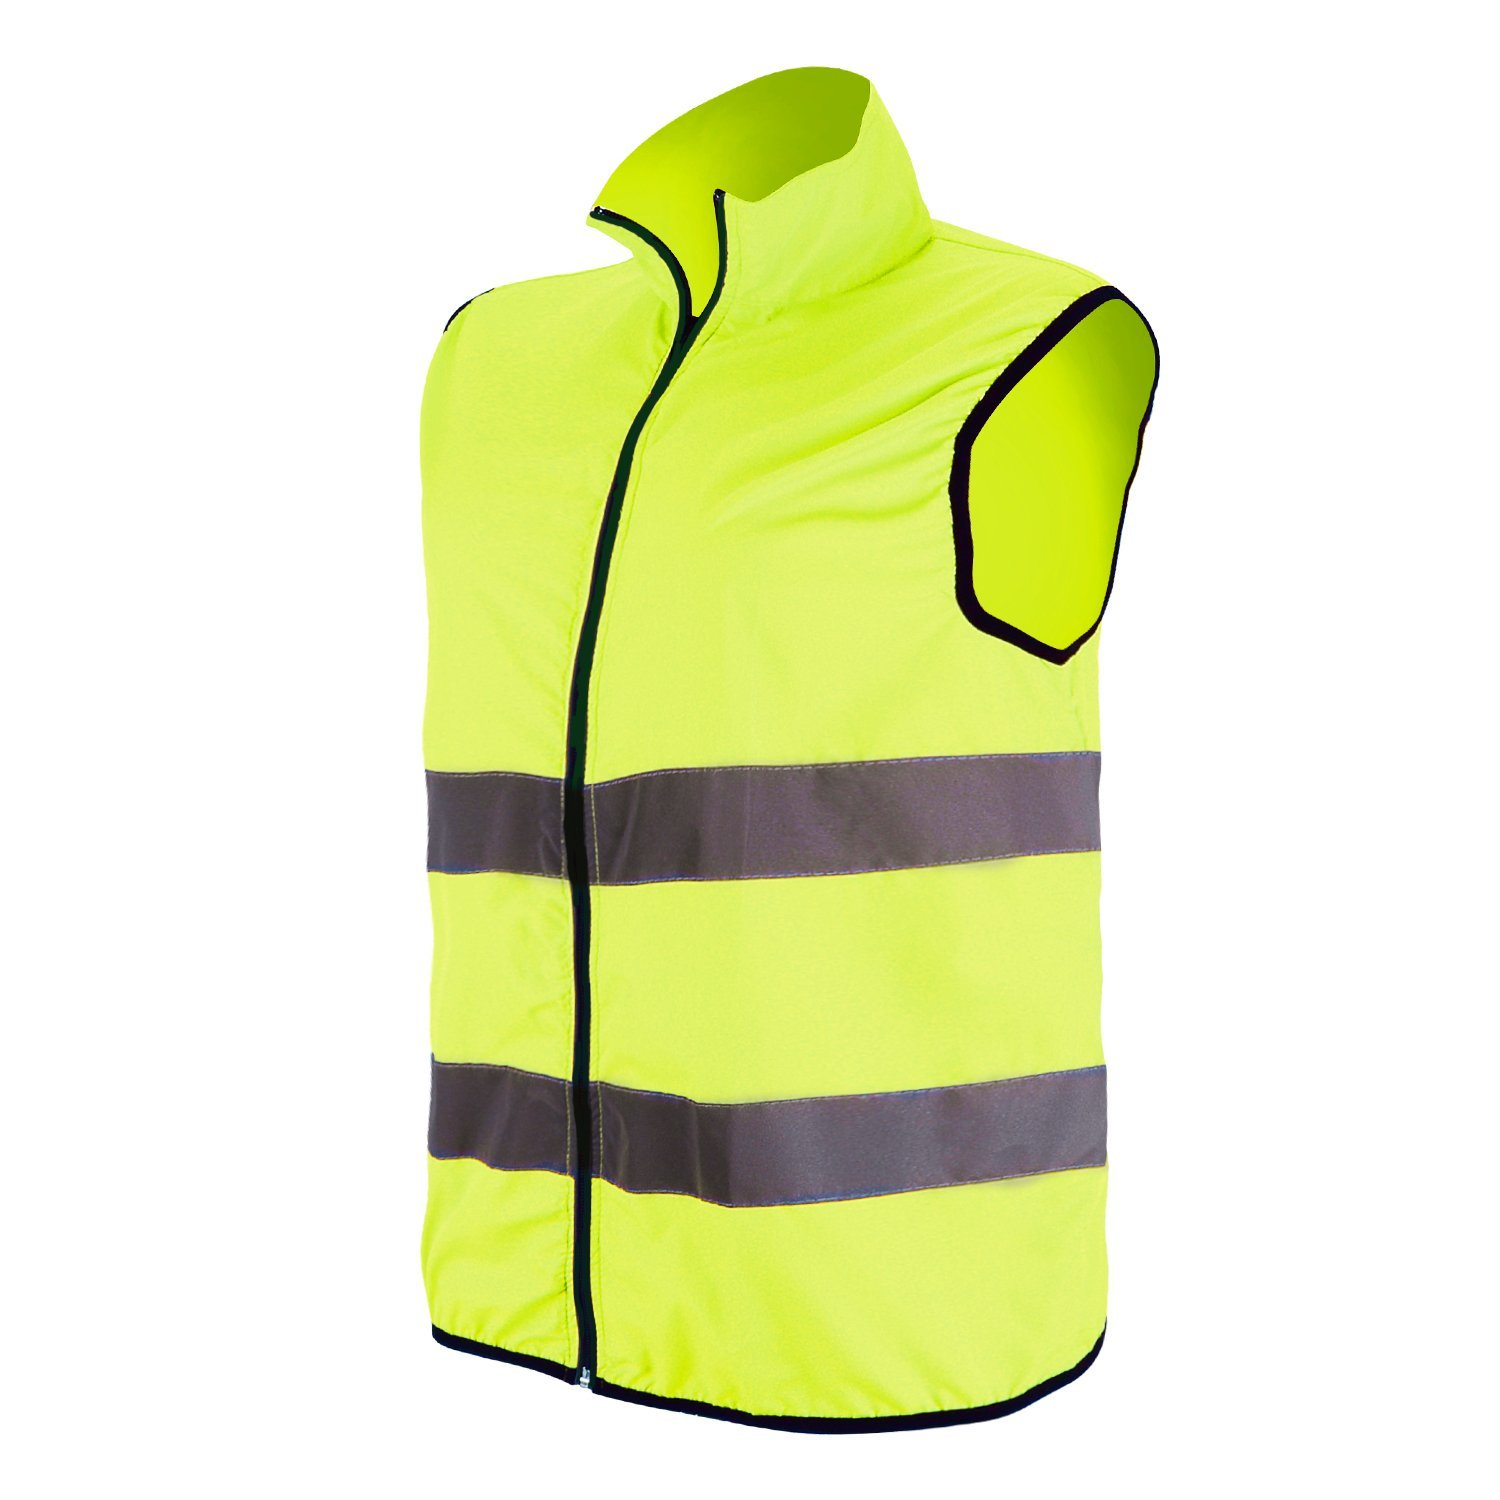 Pvc Reflective Tape Safety Reflective Vest Highways Sanitation Reflective Mesh Vests Workplace Safety Supplies